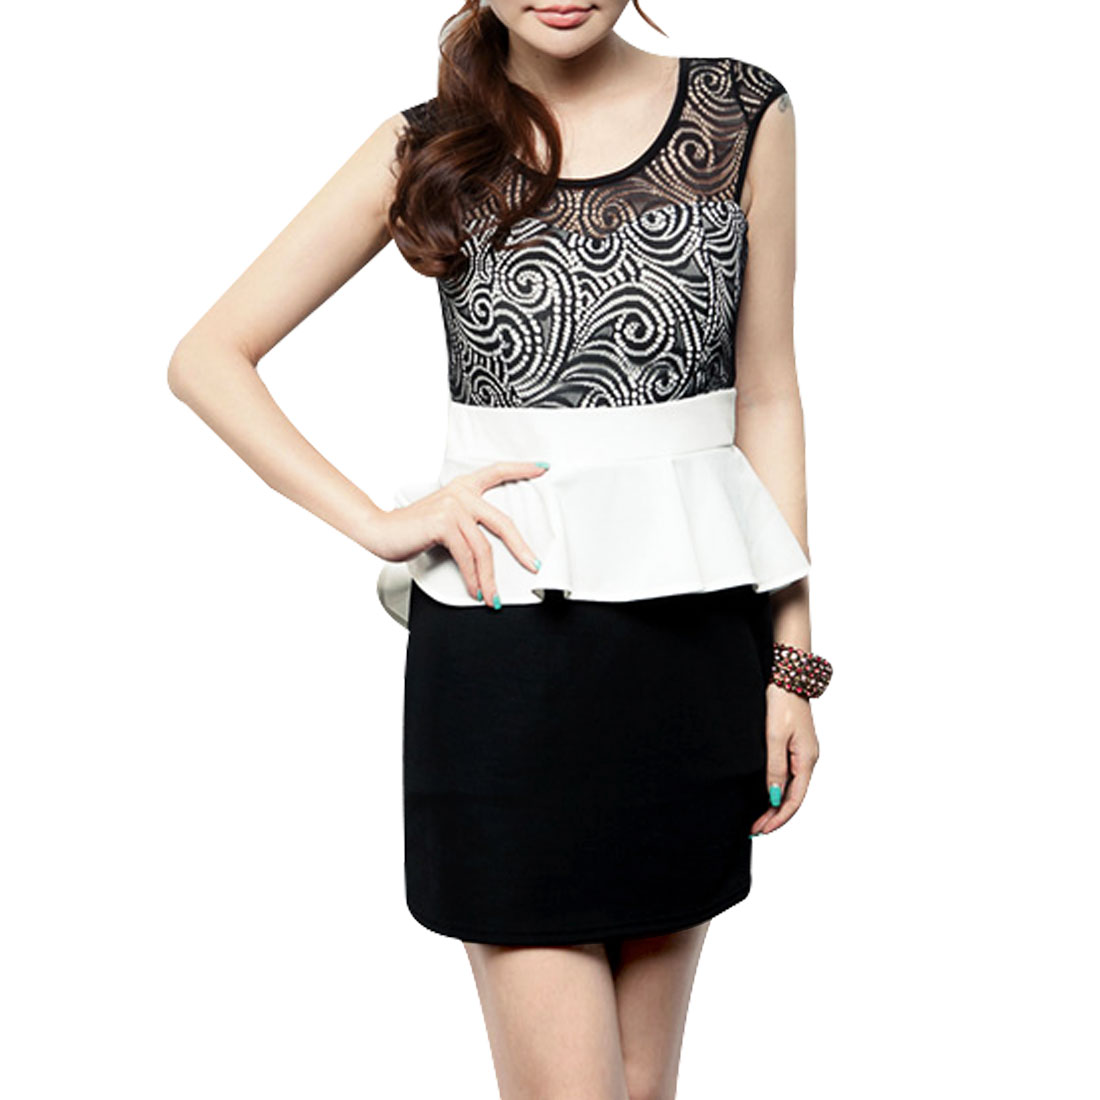 Ladies Round Neck Sleevesless Flouncing Mini Dress Black White XS